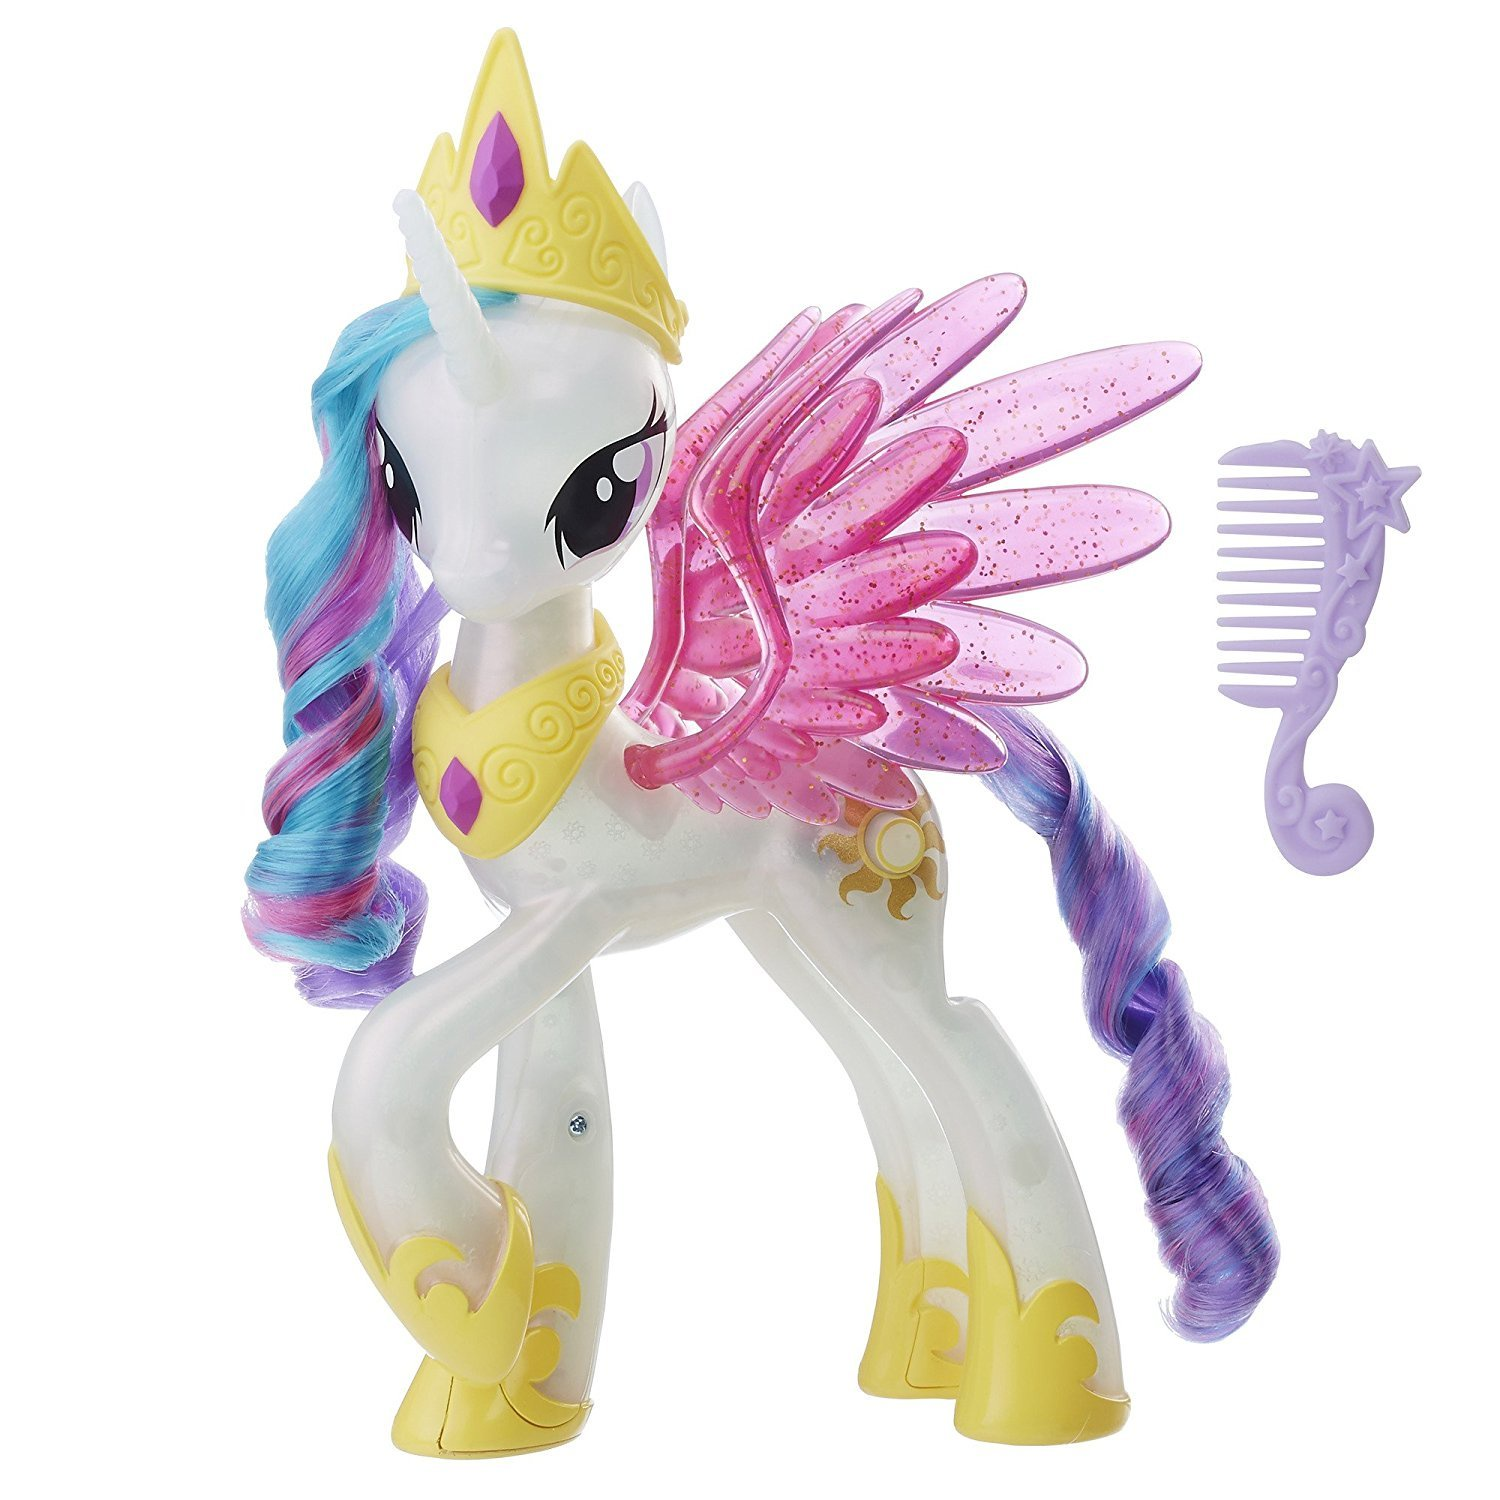 MY LITTLE PONY THE MOVIE PRINCESS CELESTIA GLITTER & GLOW